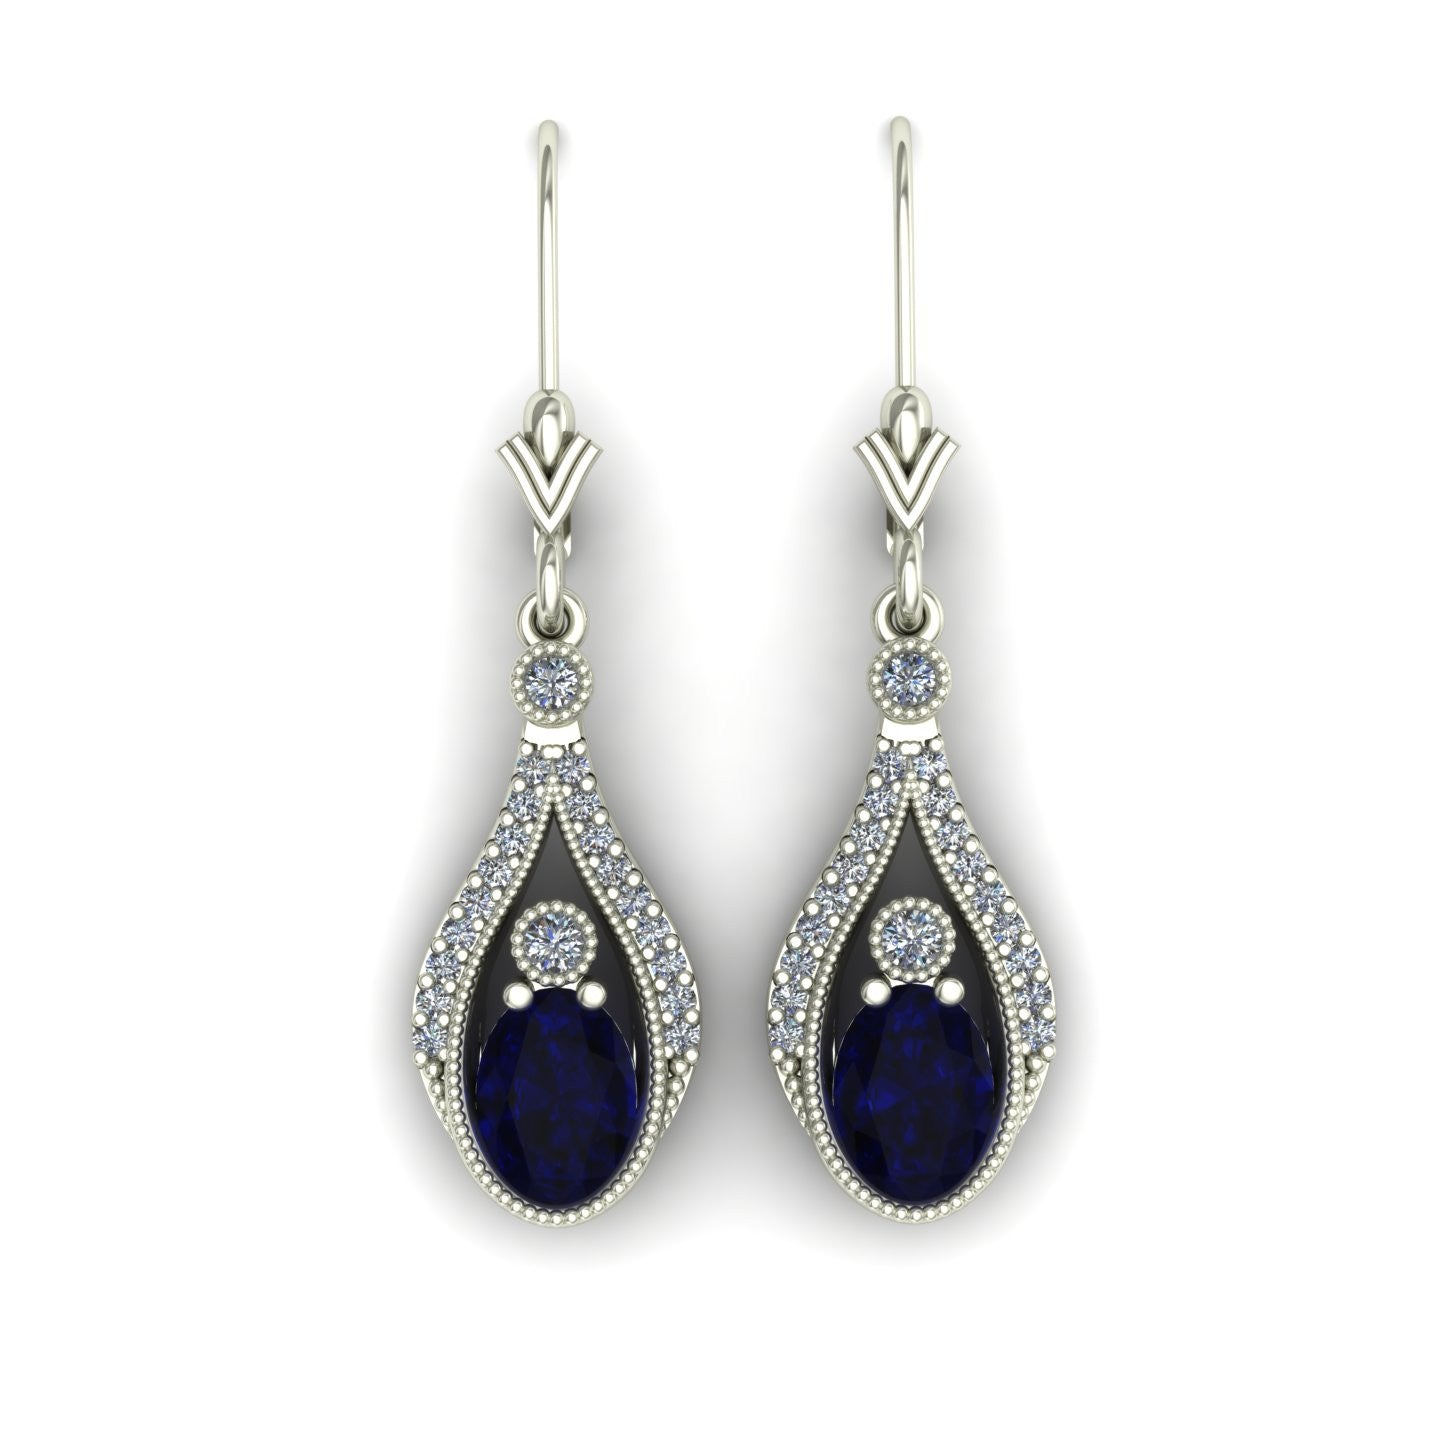 Blue sapphire and diamond drop earrings in 14k white gold